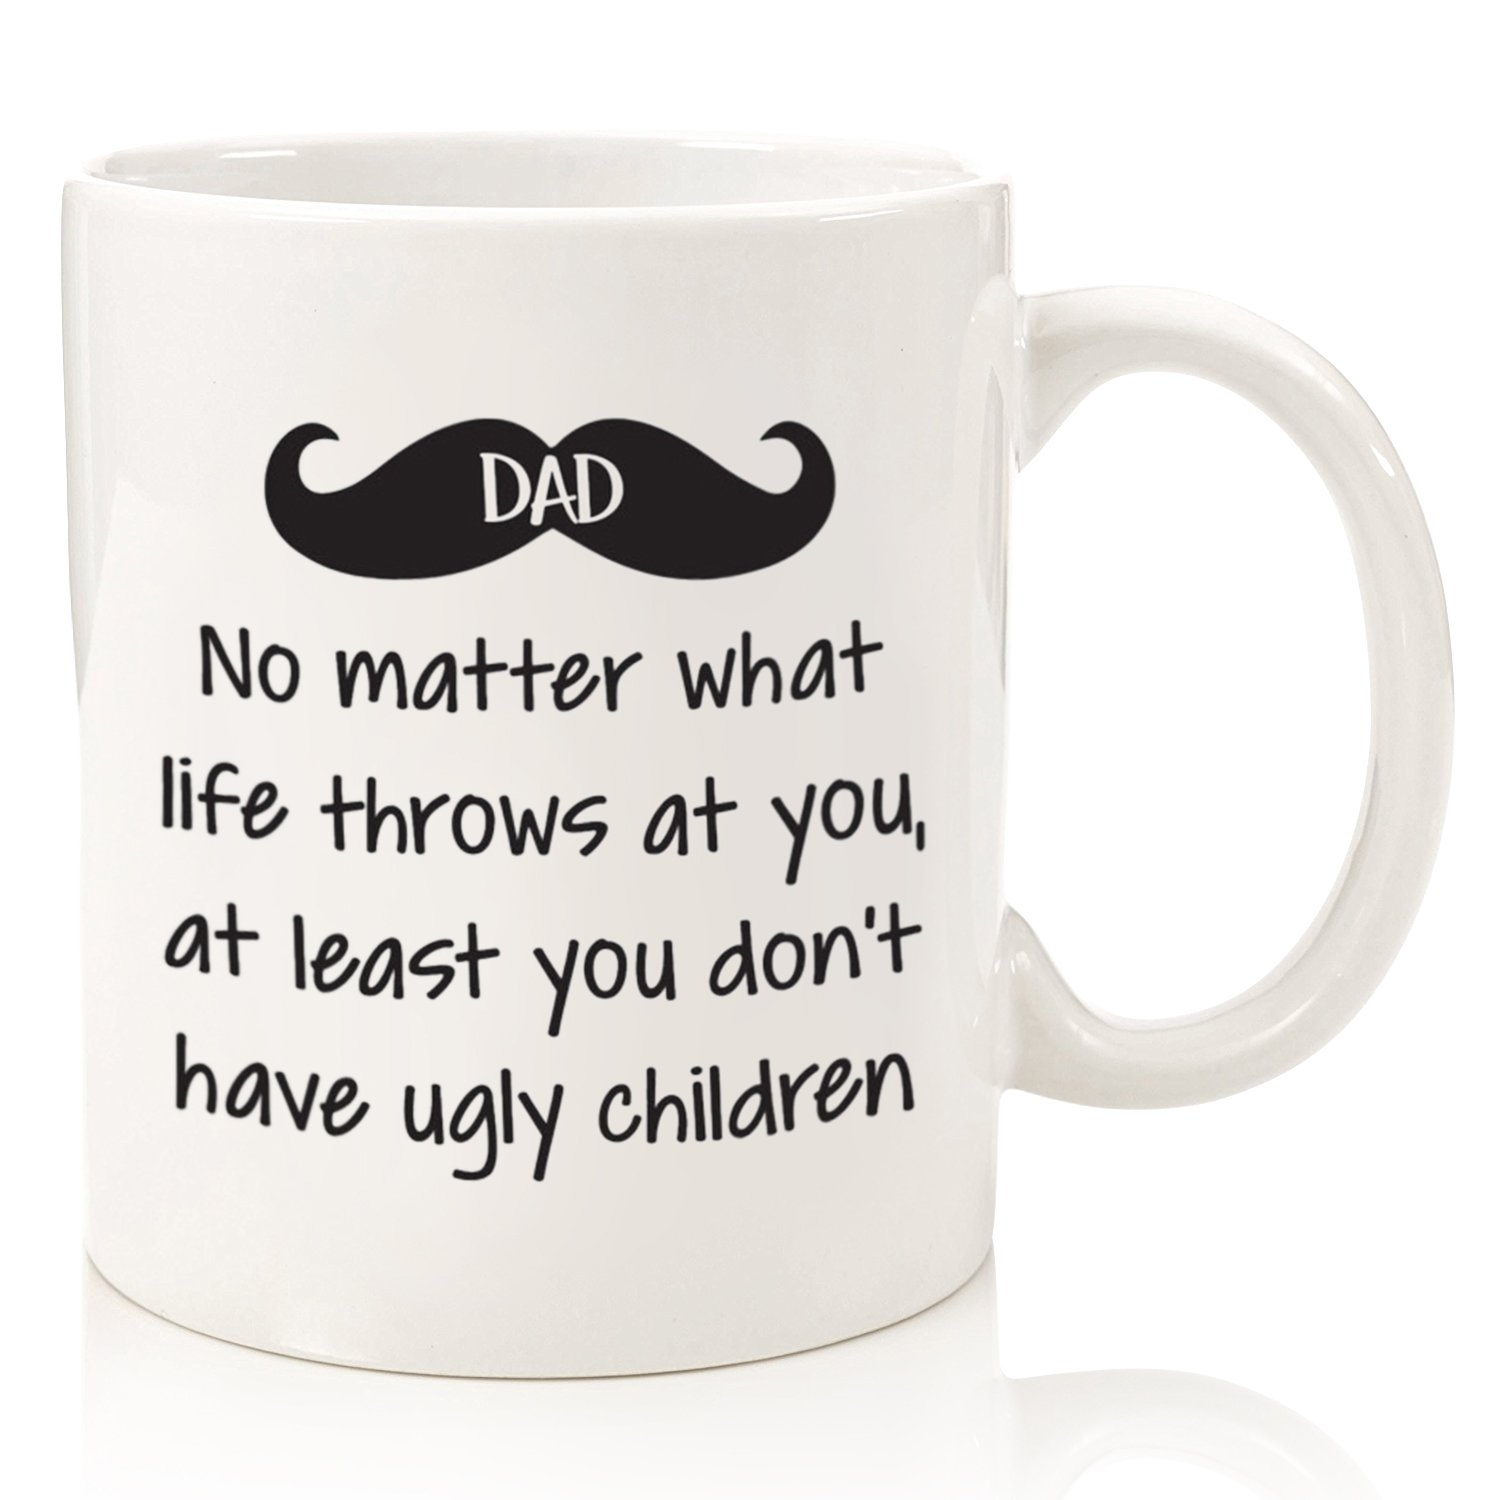 dad no matter what funny coffee mug